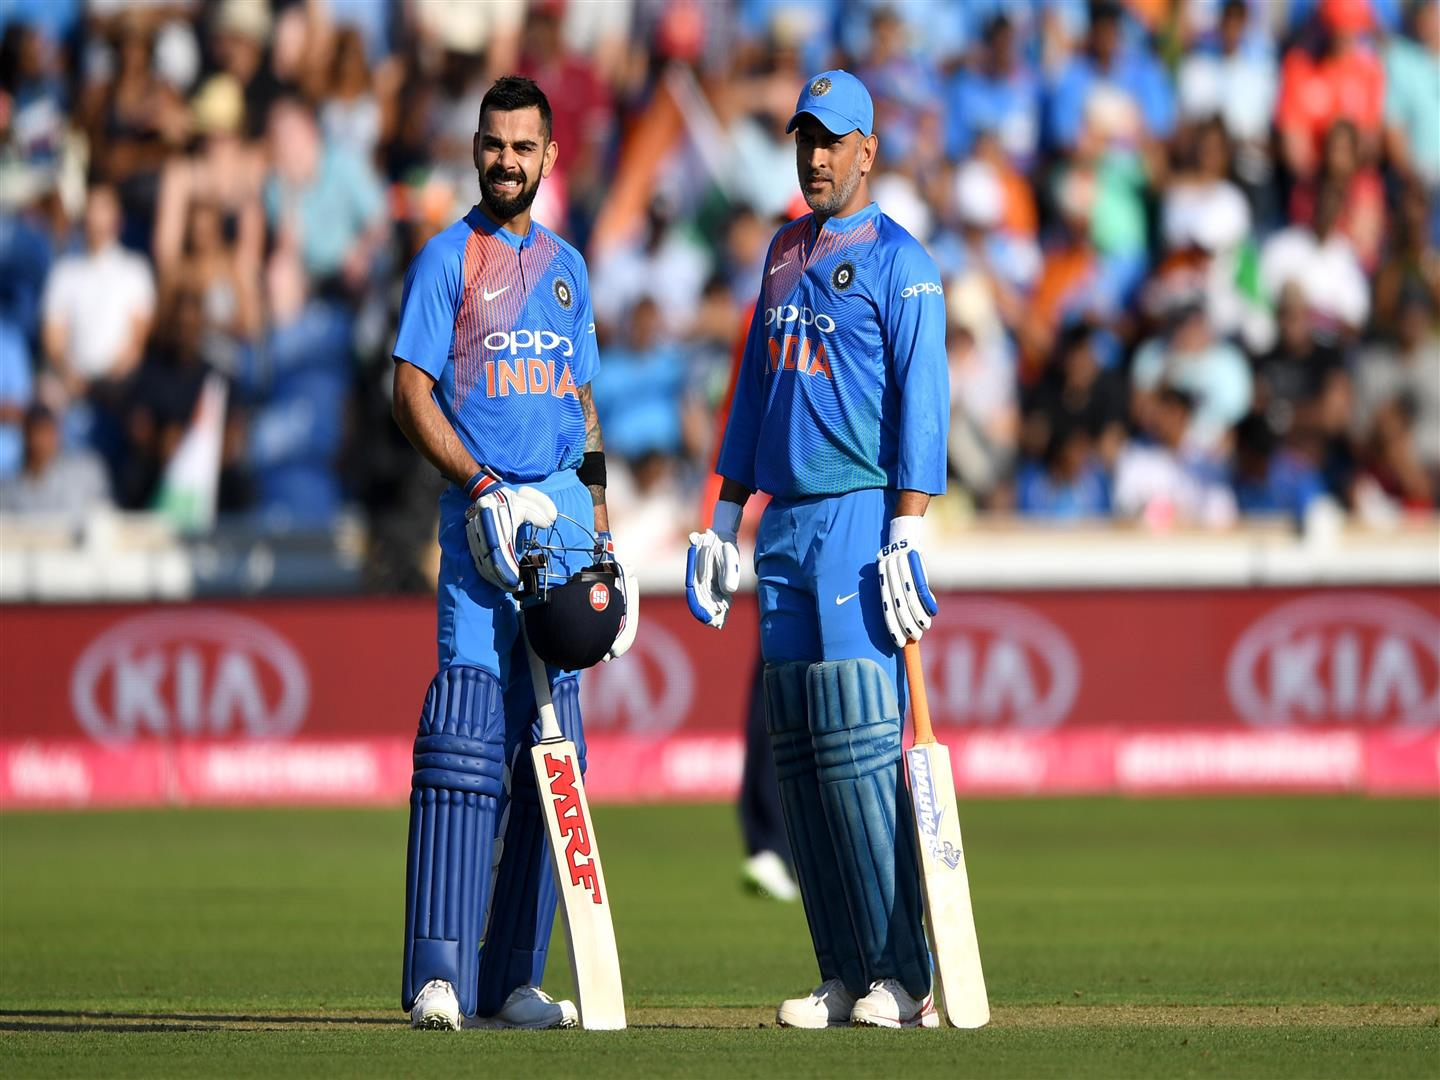 1440x1080 Virat Kohli and MS Dhoni in Cricket Worldcup 2019 4K Wallpaper